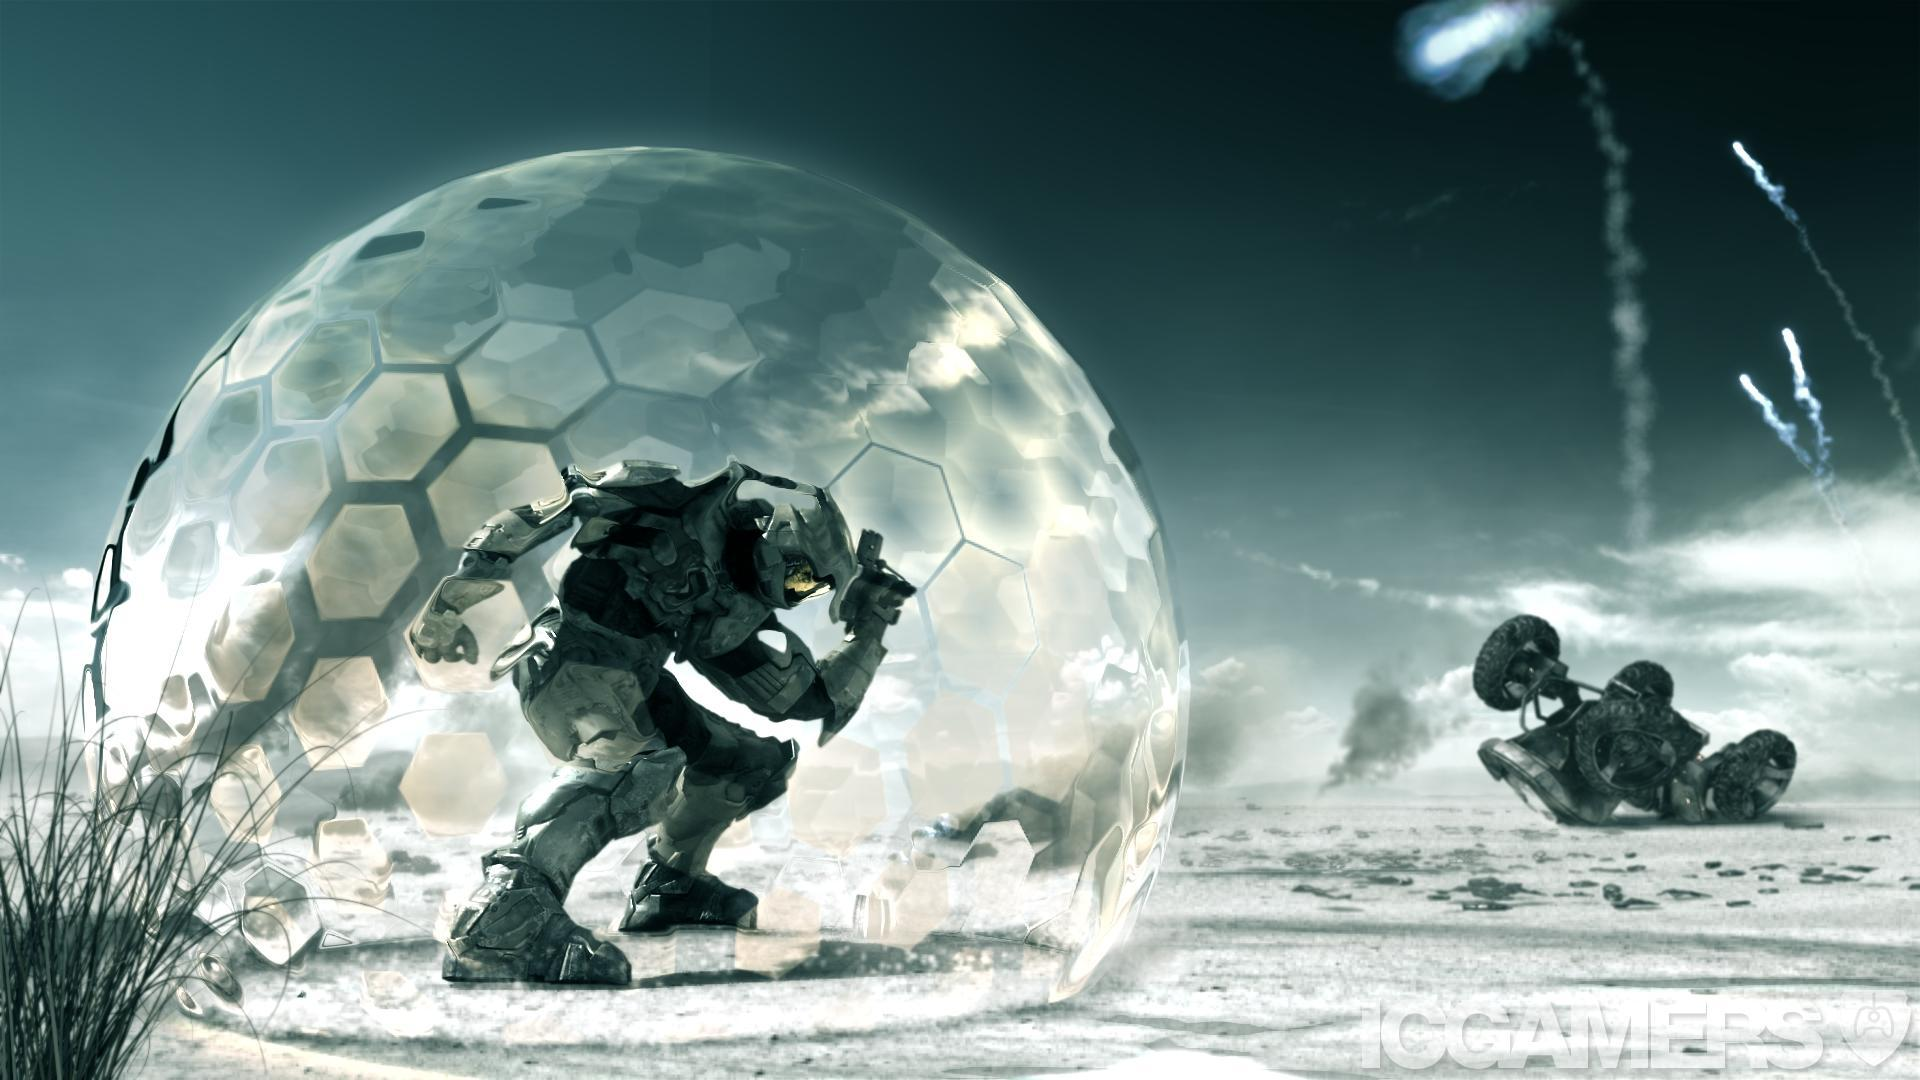 Halo xxx cool wallpapers adult thumbs